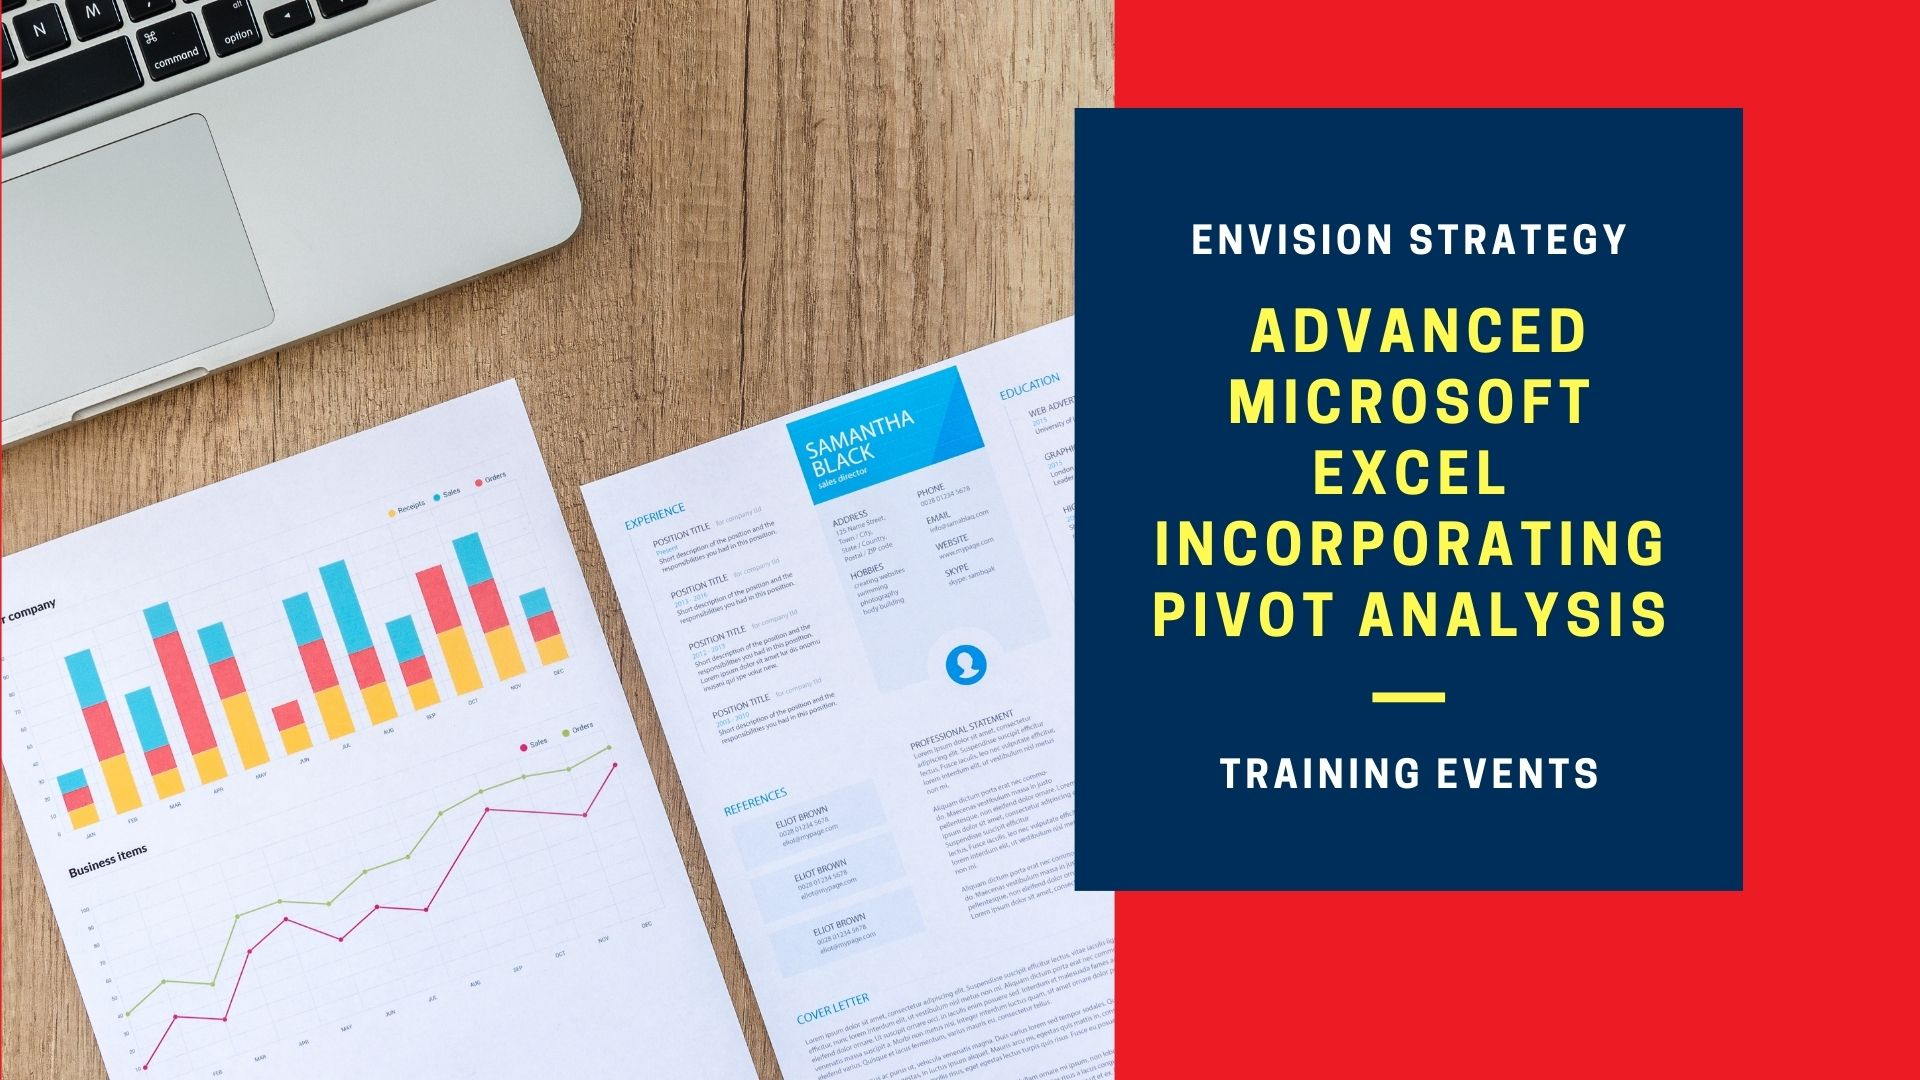 Advanced Microsoft Excel incorporating Pivot Analysis